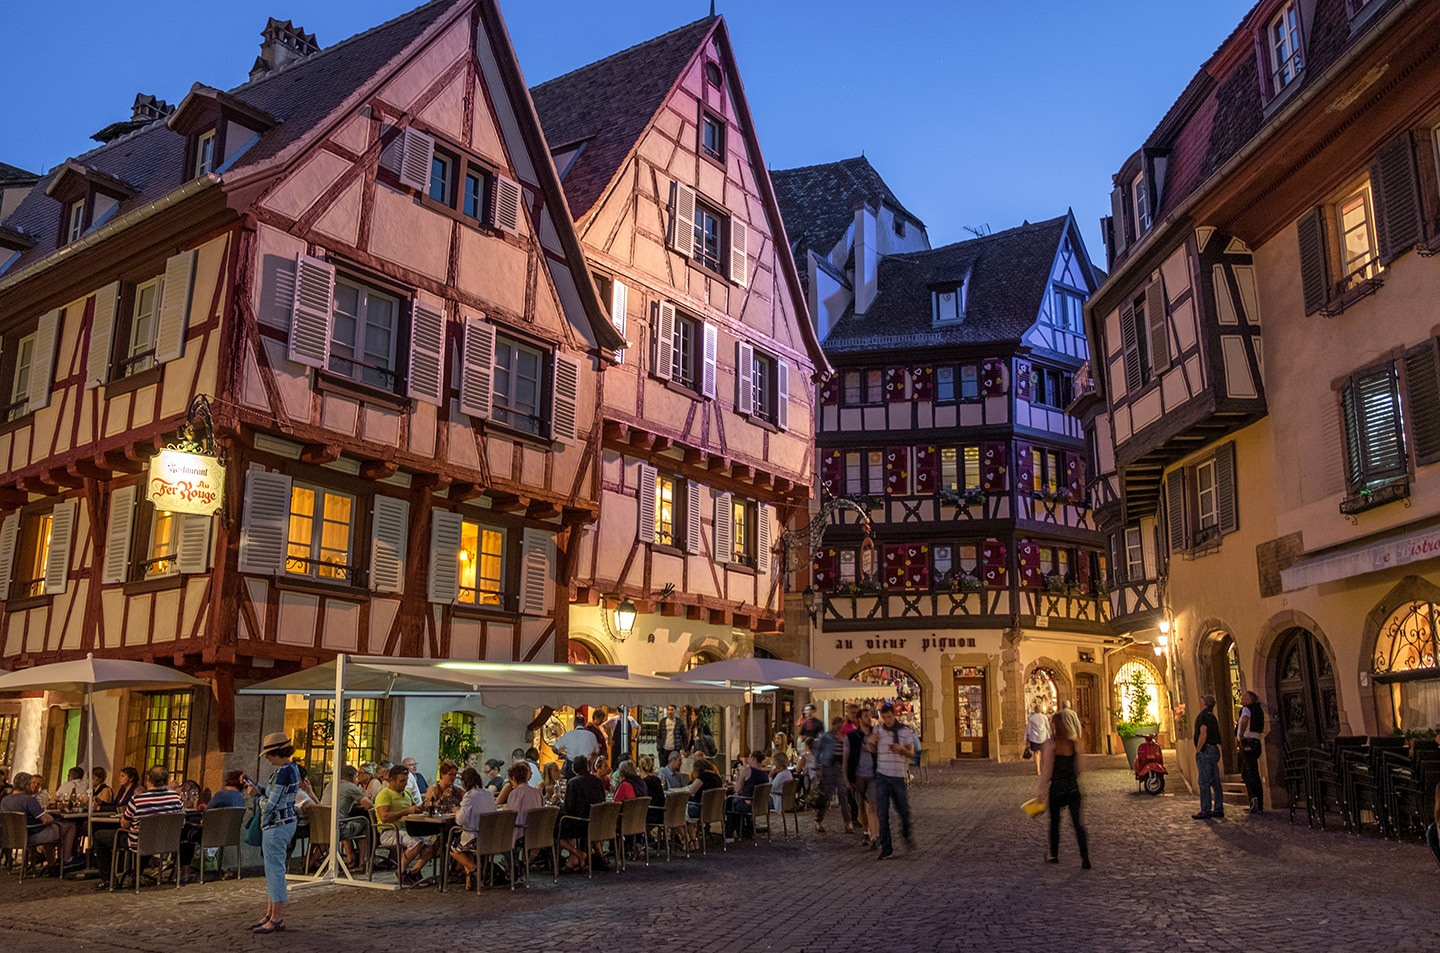 Colmar in France's Alsace region